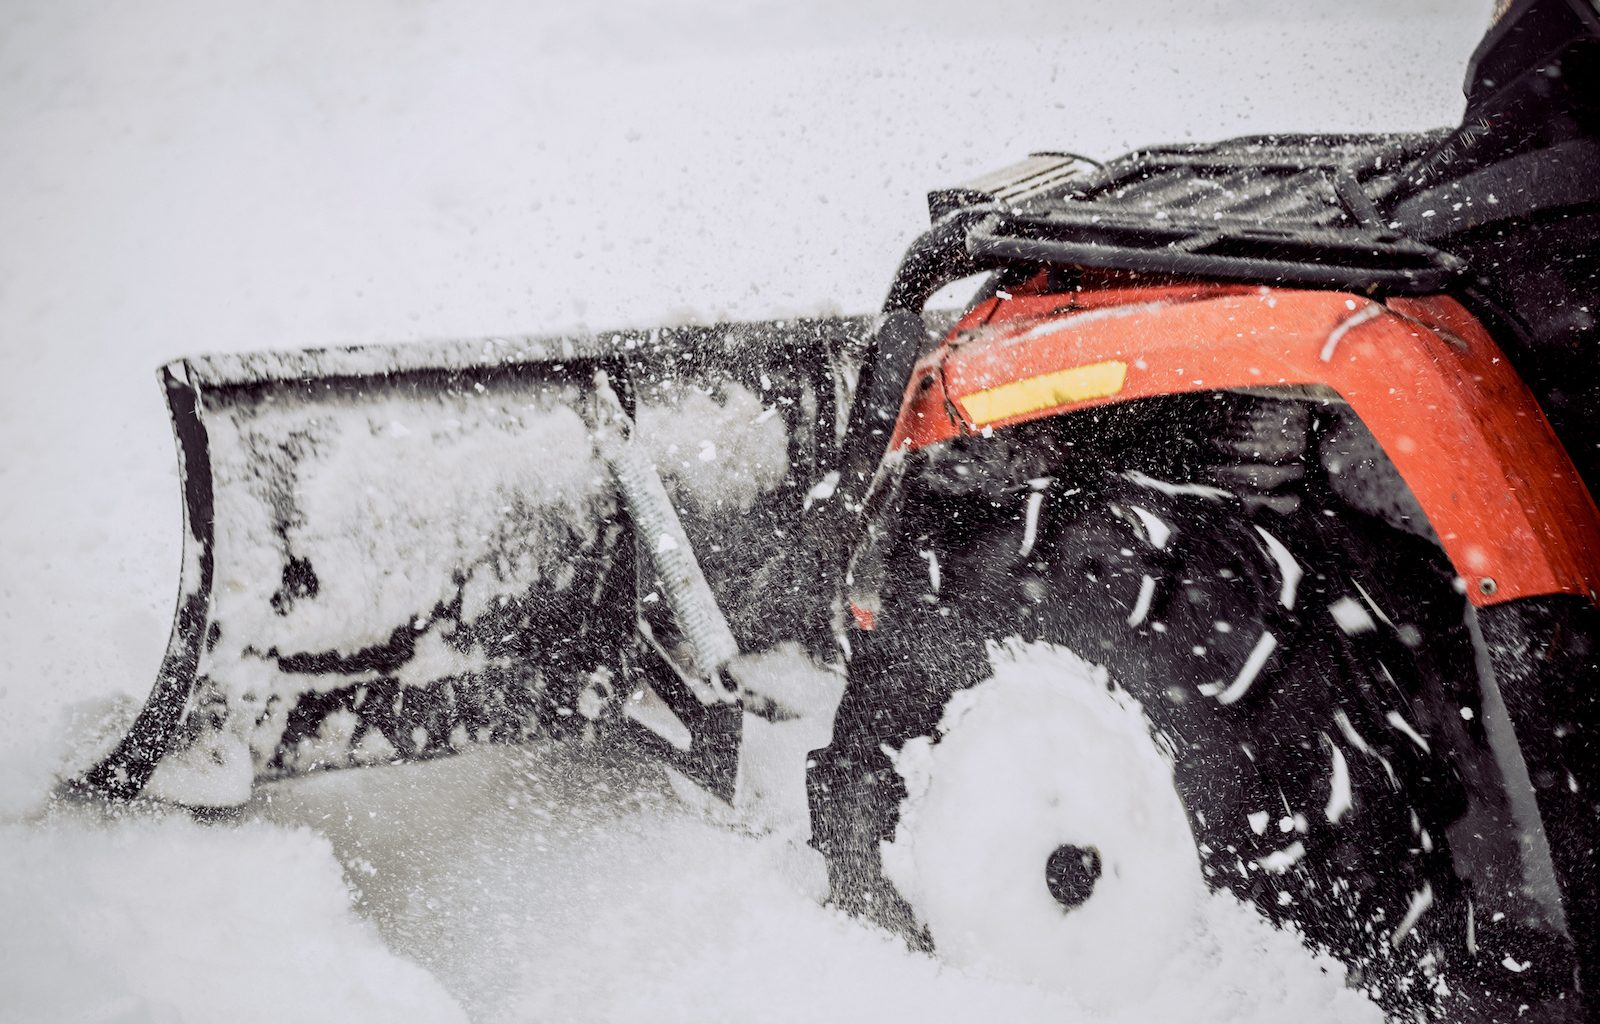 How to attach a snow plow to an ATV